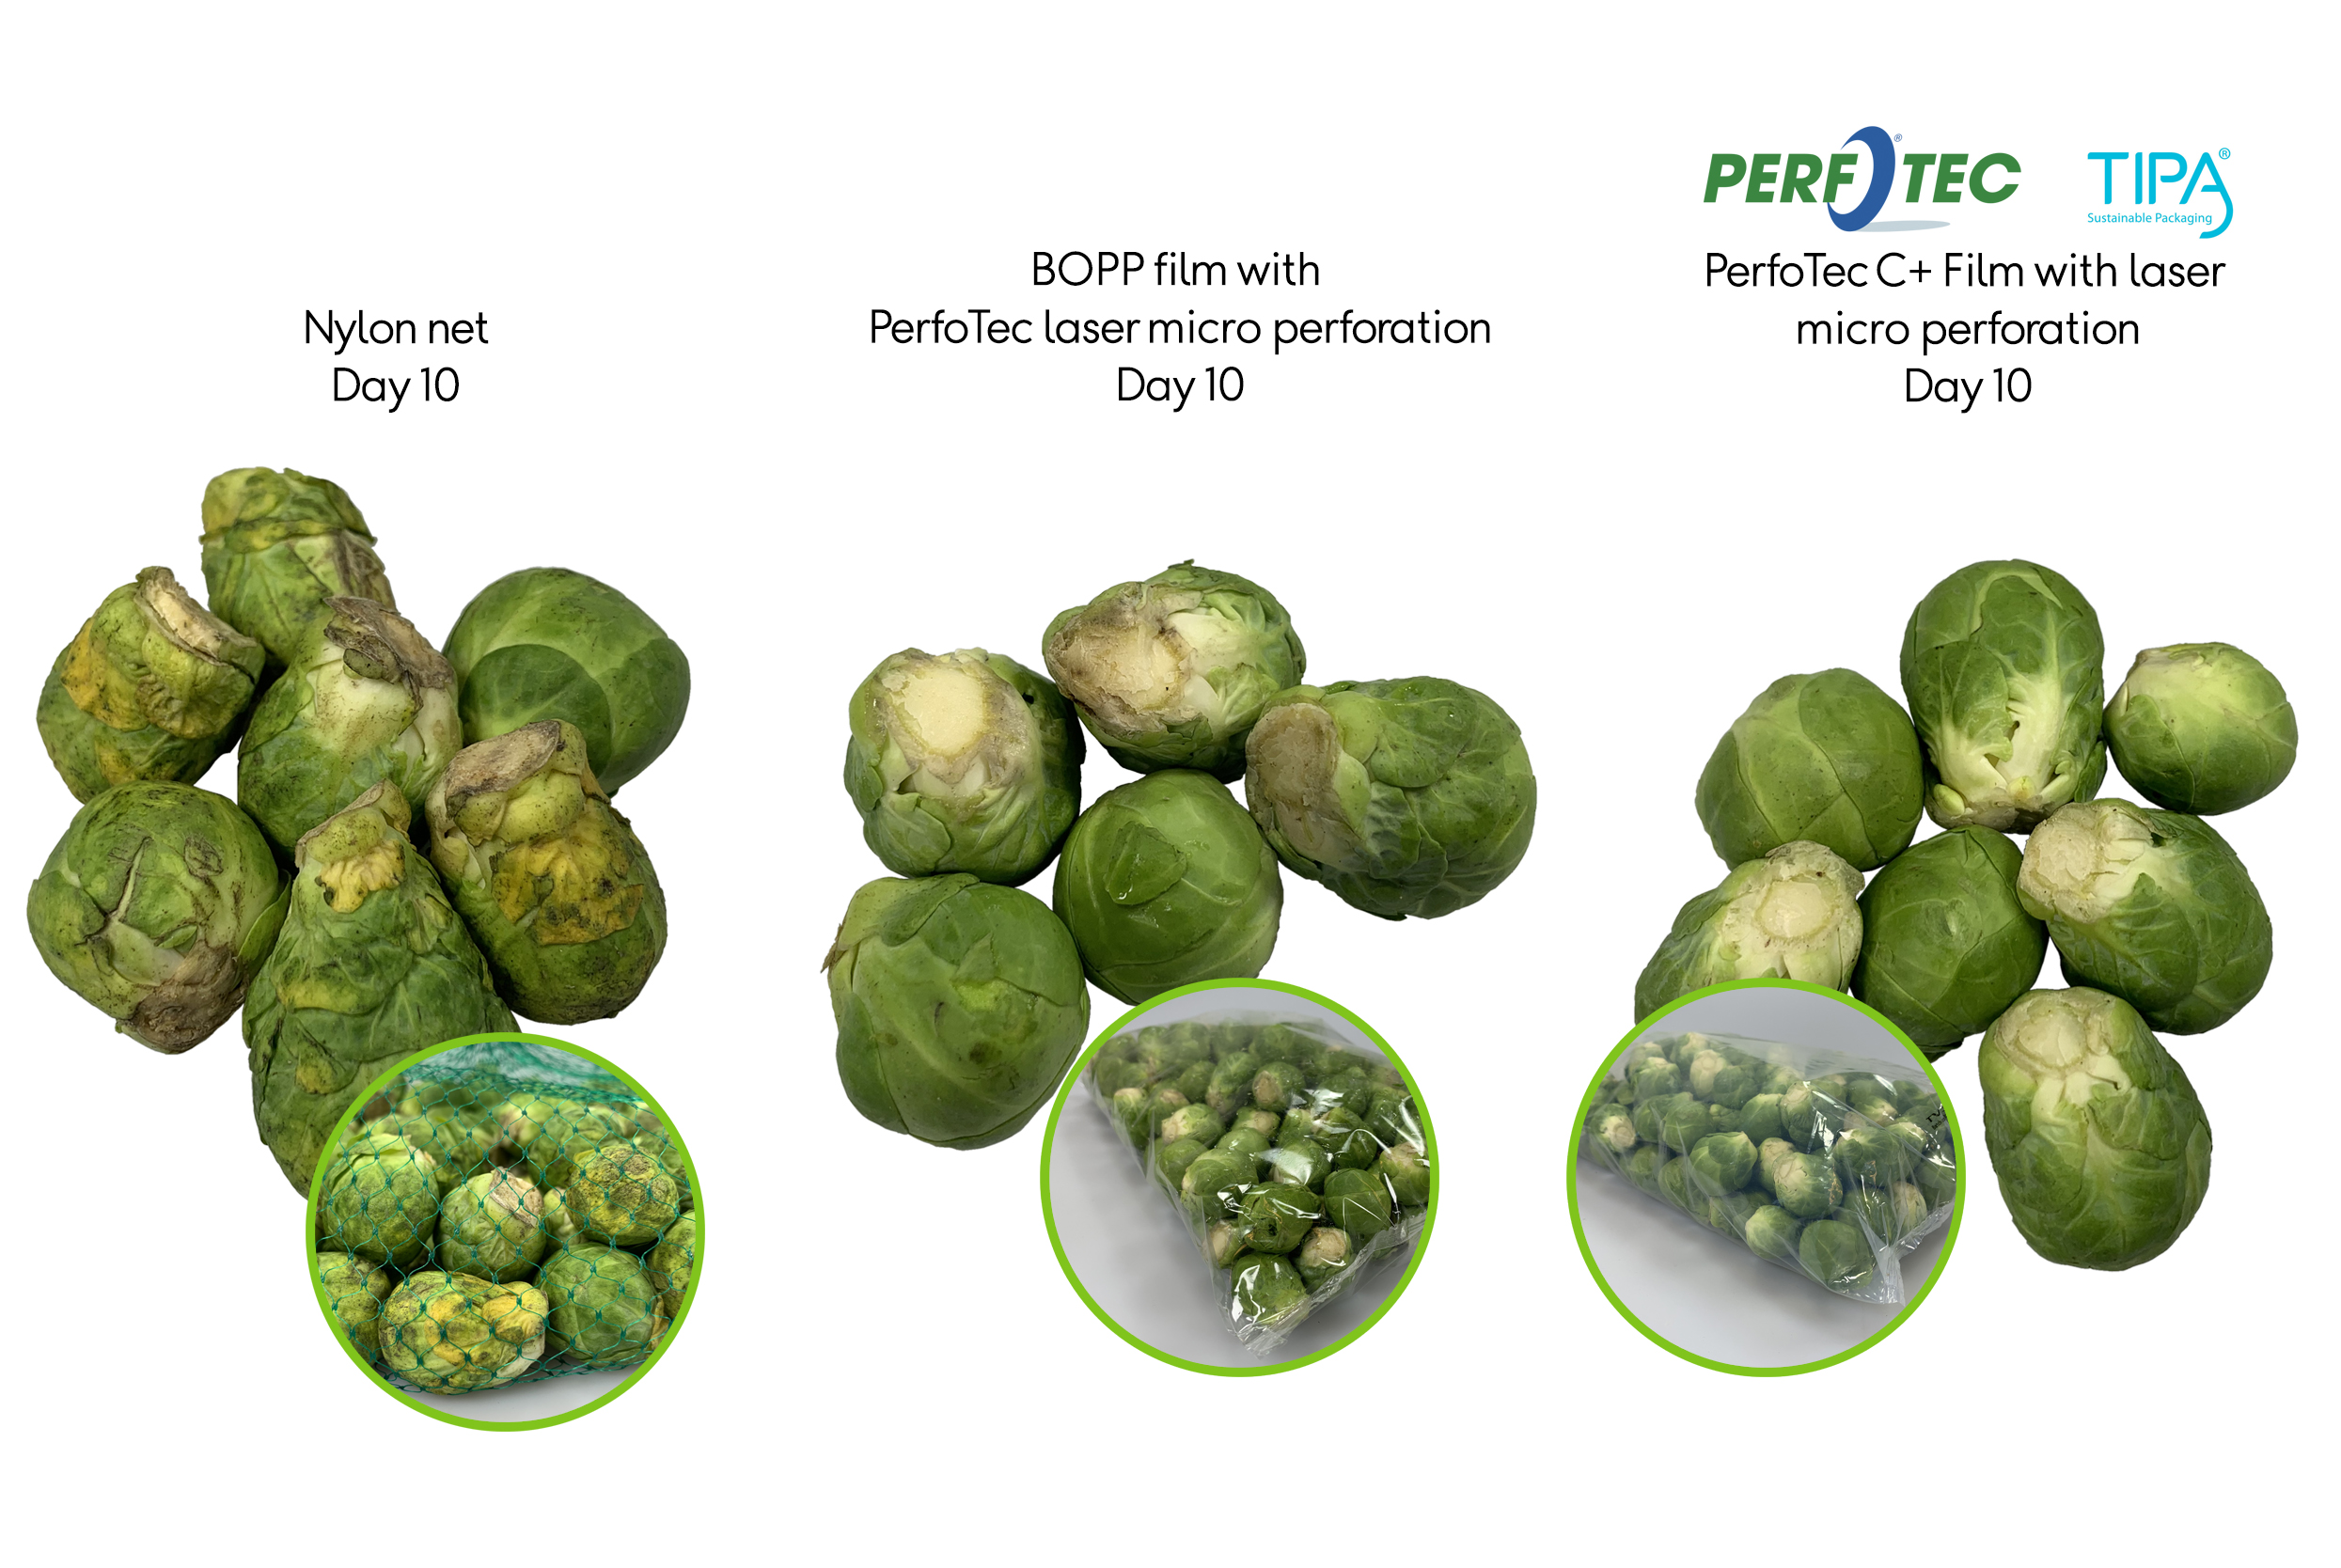 Brussels Sprouts and PerfoTec TIPA technology